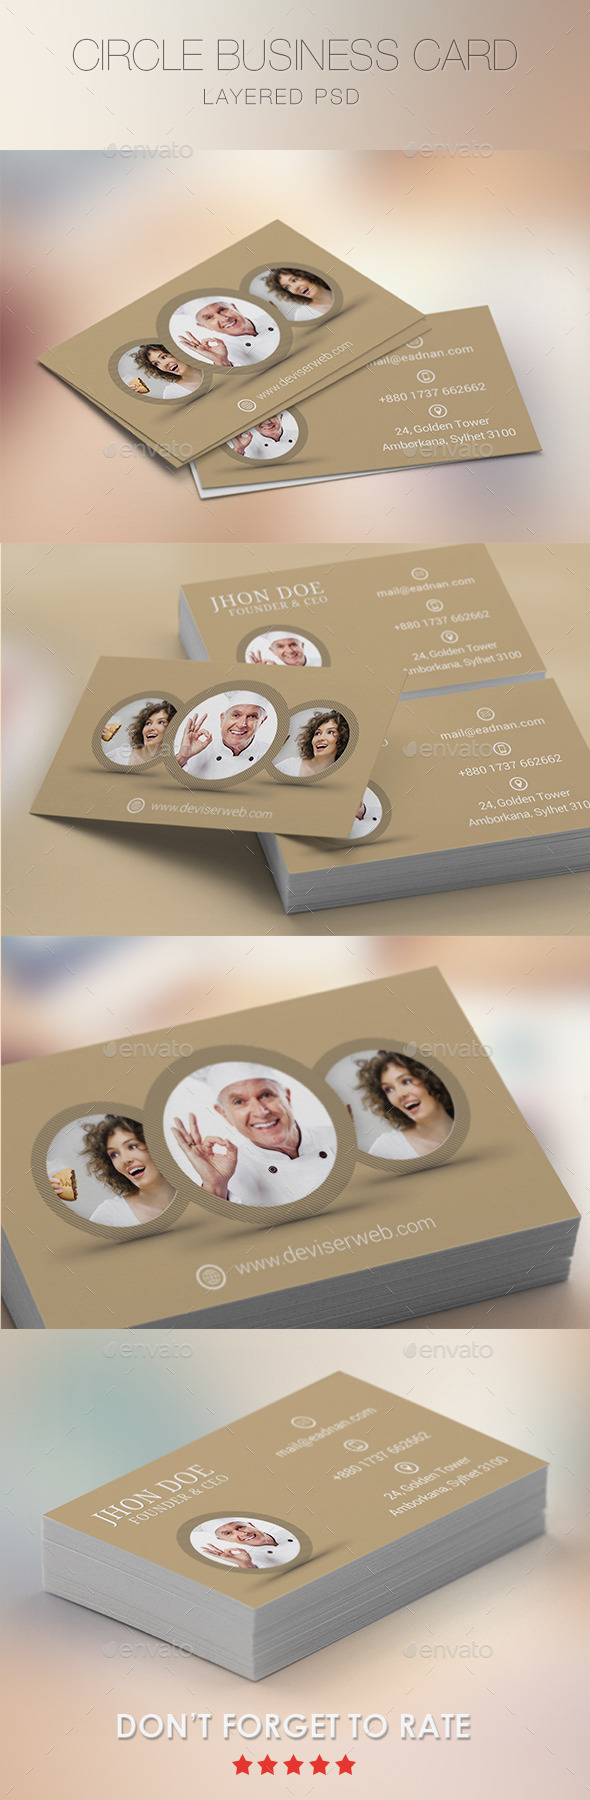 Creative Circle Business Card Template - Creative Business Cards